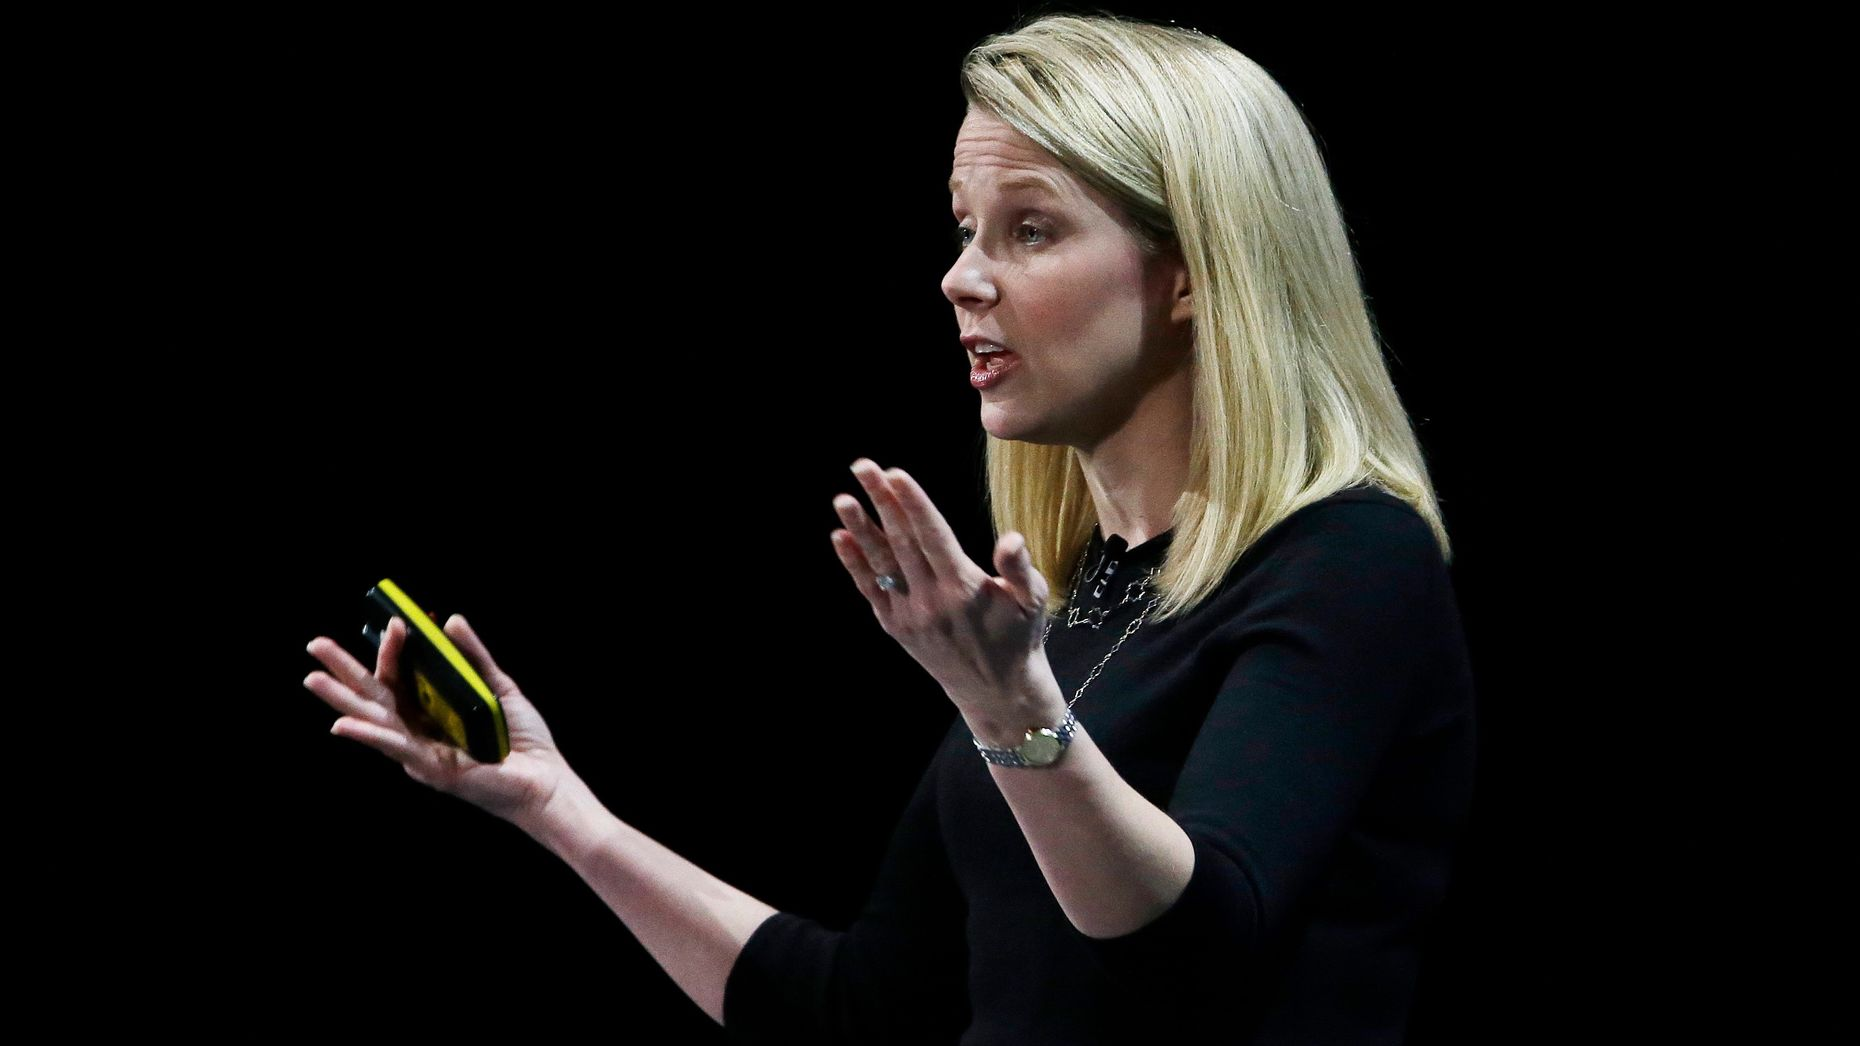 Marissa Mayer. Photo by AP.